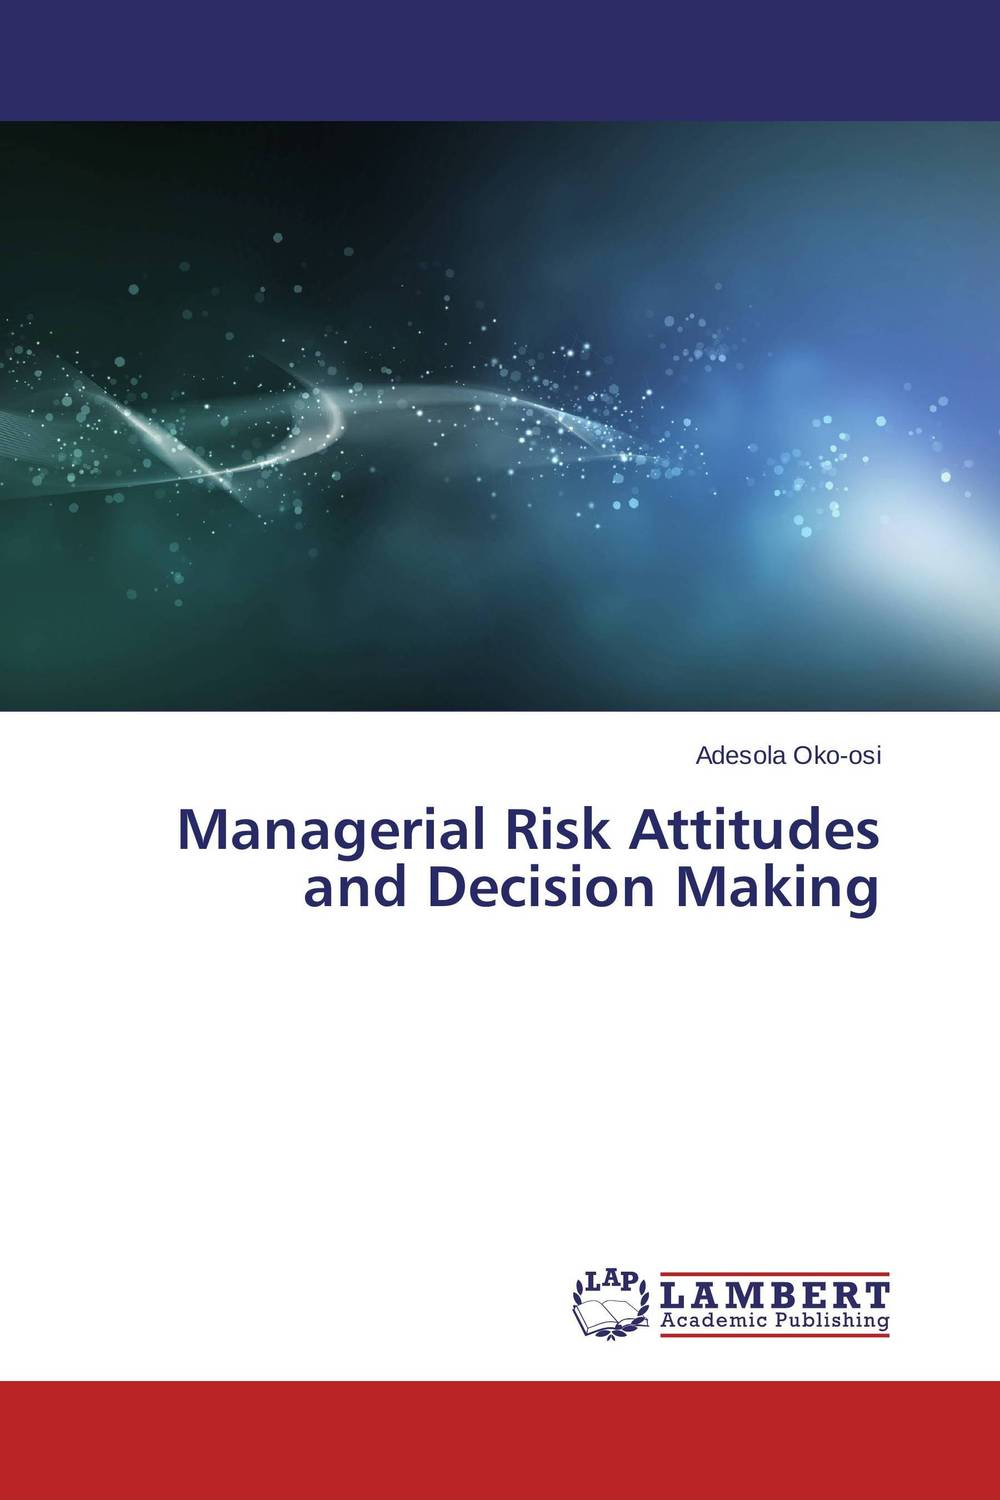 Managerial Risk Attitudes and Decision Making thomas stanton managing risk and performance a guide for government decision makers